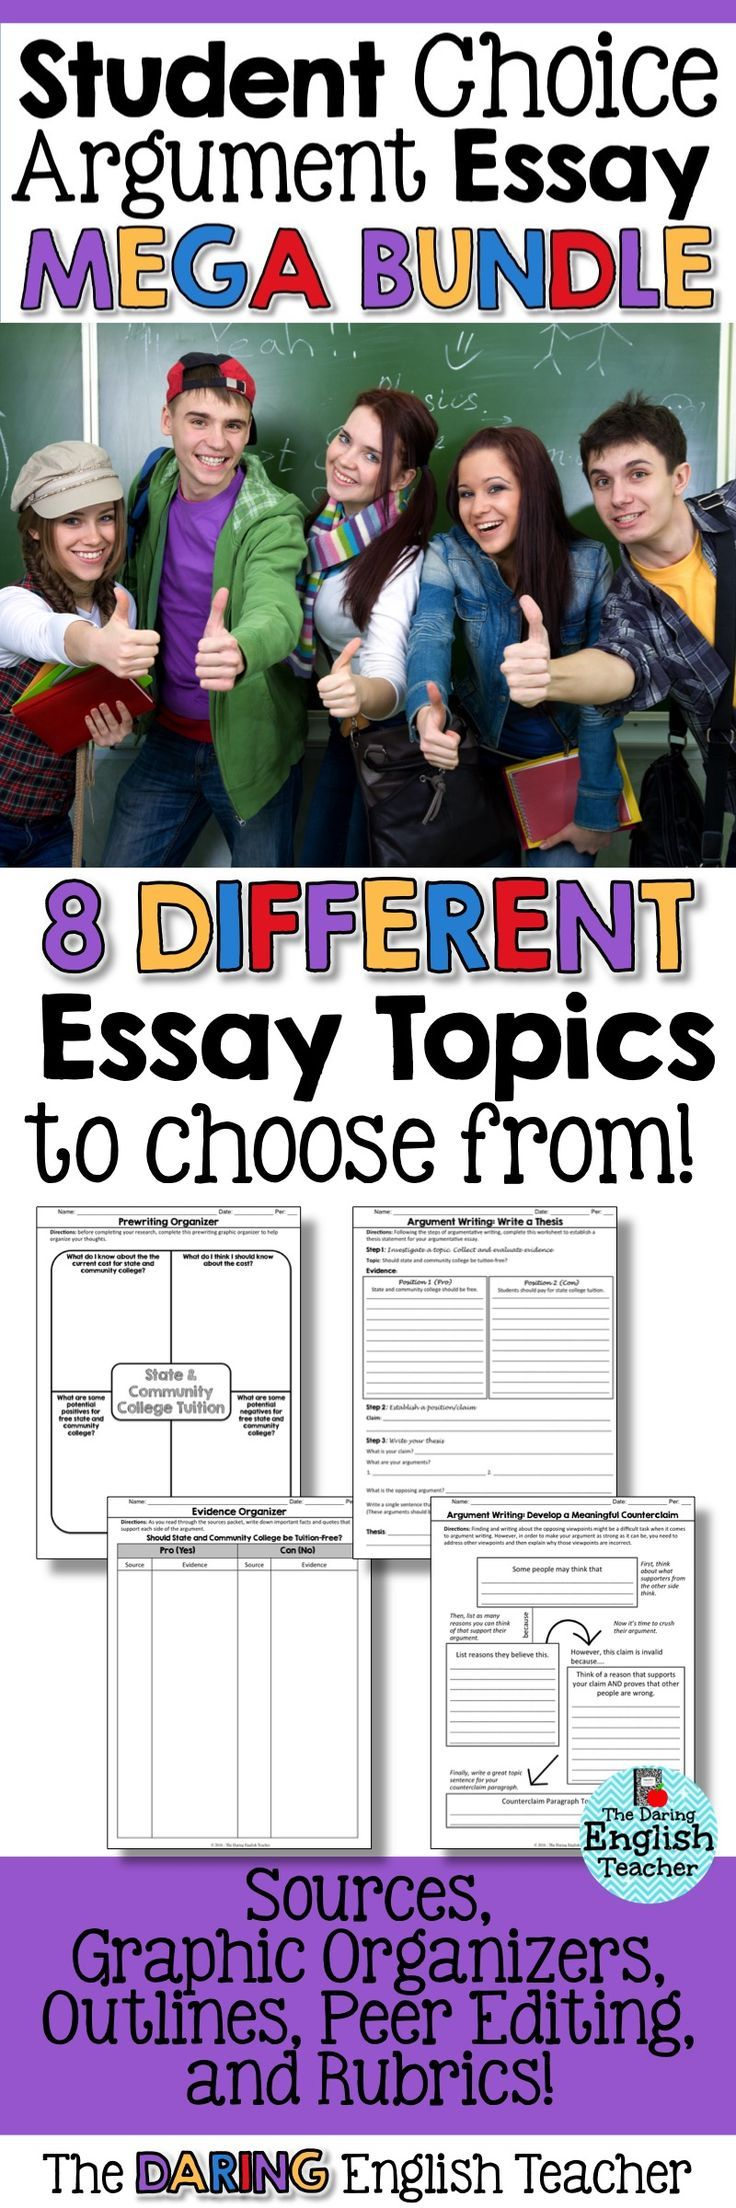 17 best images about essay mini lessons for middle school and high 17 best images about essay mini lessons for middle school and high school english research writing research paper and graphic organizers